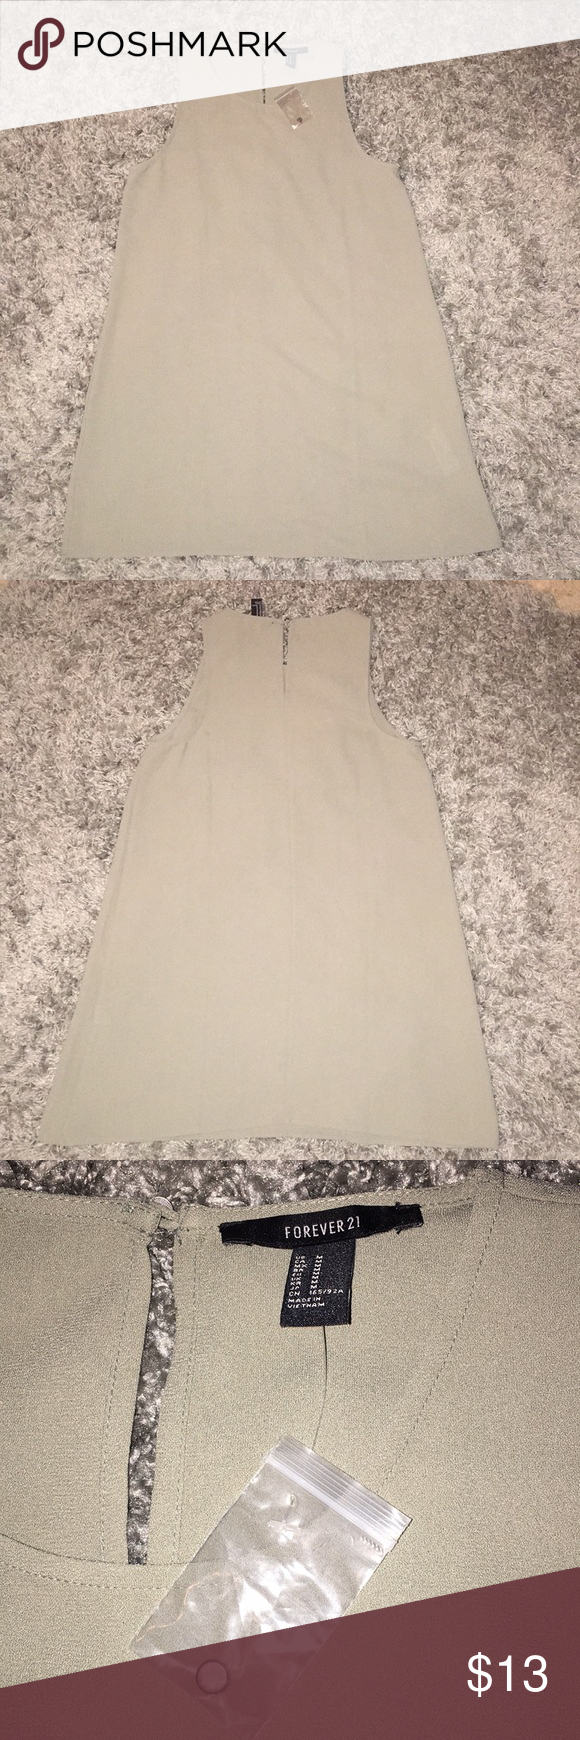 NWT Forever 21 Sage Green A-Line Dress Size M Basically NWT, never worn, except the tag is missing? But I have the button part of the tag? Strange. This is a very elegant sage green dress in an a-line shape. Mini/short length but still modest and covers your booty. Keyhole back with pewter button. 100% polyester. Would look great with a long necklace or a thin belt, or wear it in plain! I bought the dress in three different shades, and decided to keep the black one. Forever 21 Dresses Mini #sagegreendress